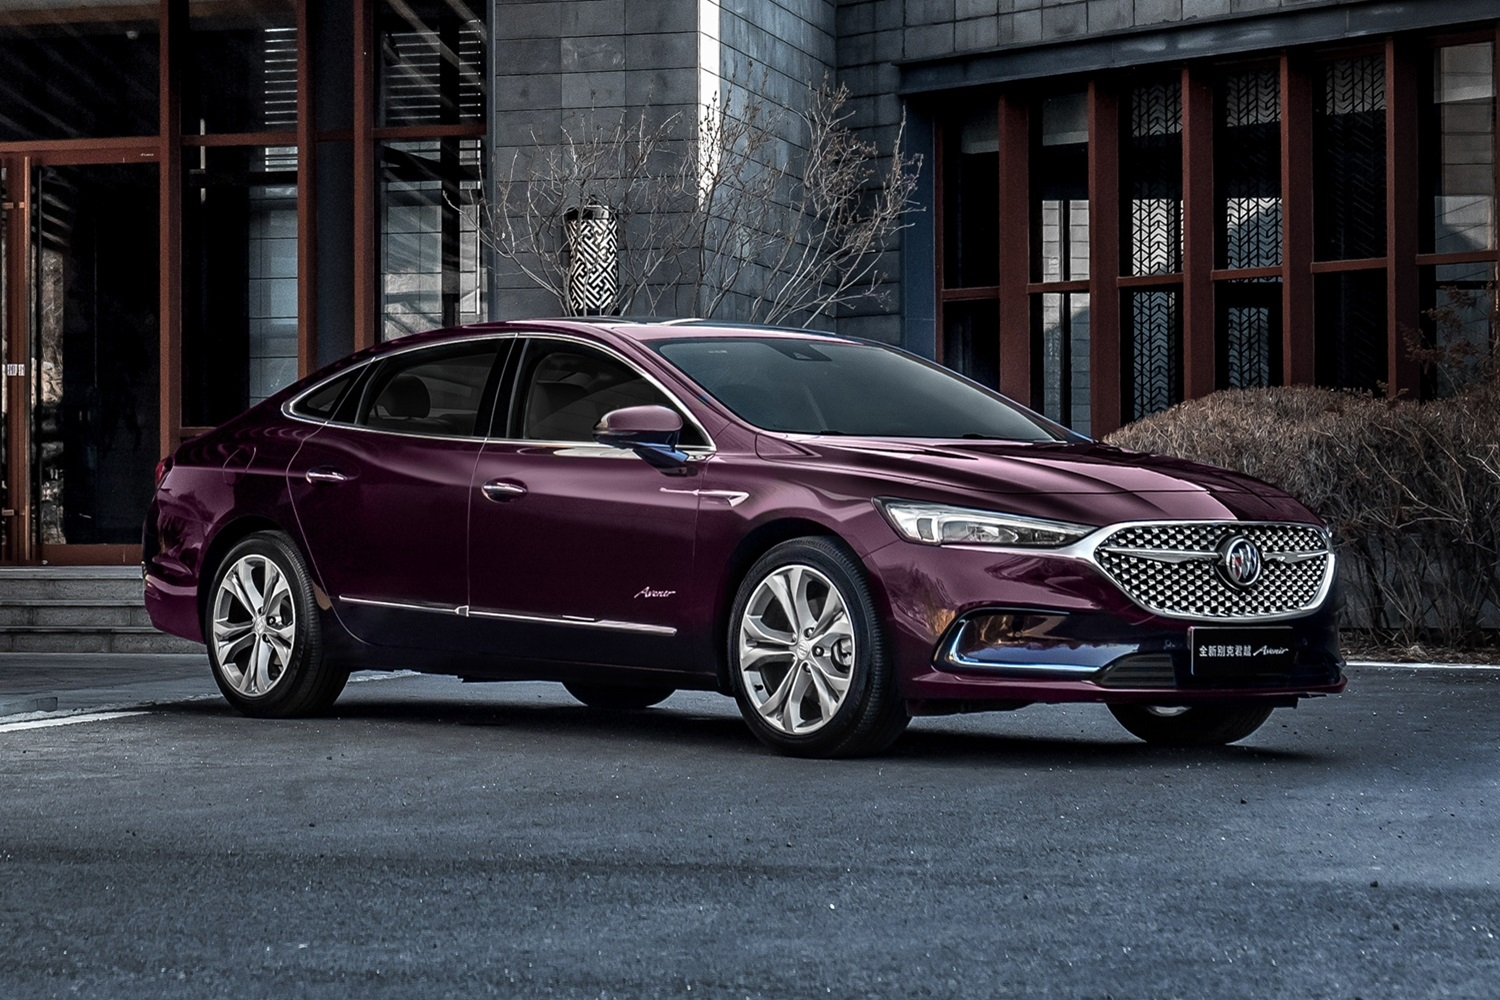 2021 Buick Lacrosse Gets More Refined Than Ever | Gm Authority When Will The New 2022 Buick Lacrosse Be Released